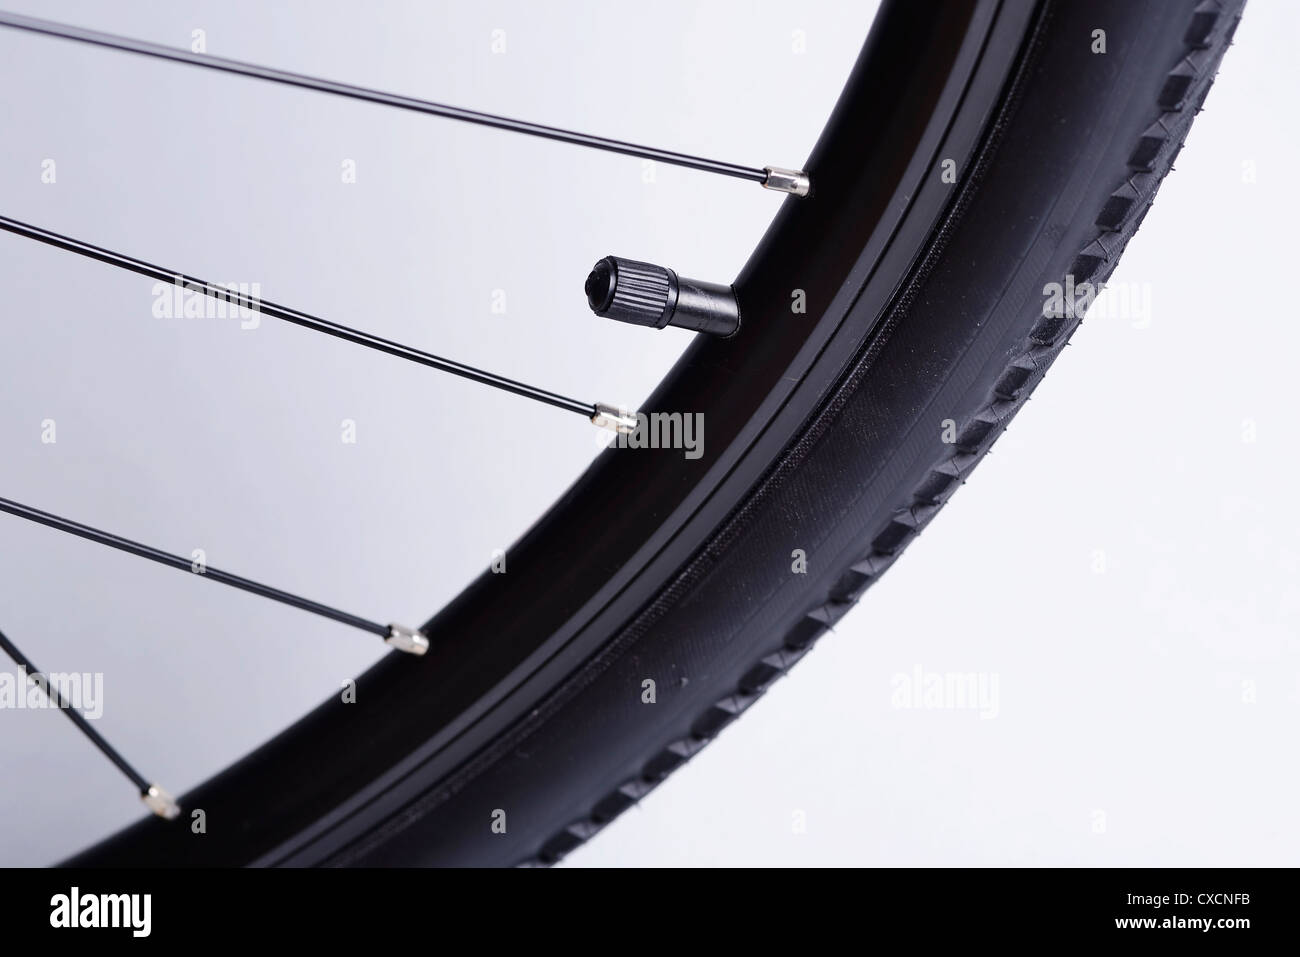 Bicycle tire and valve close up detail - Stock Image